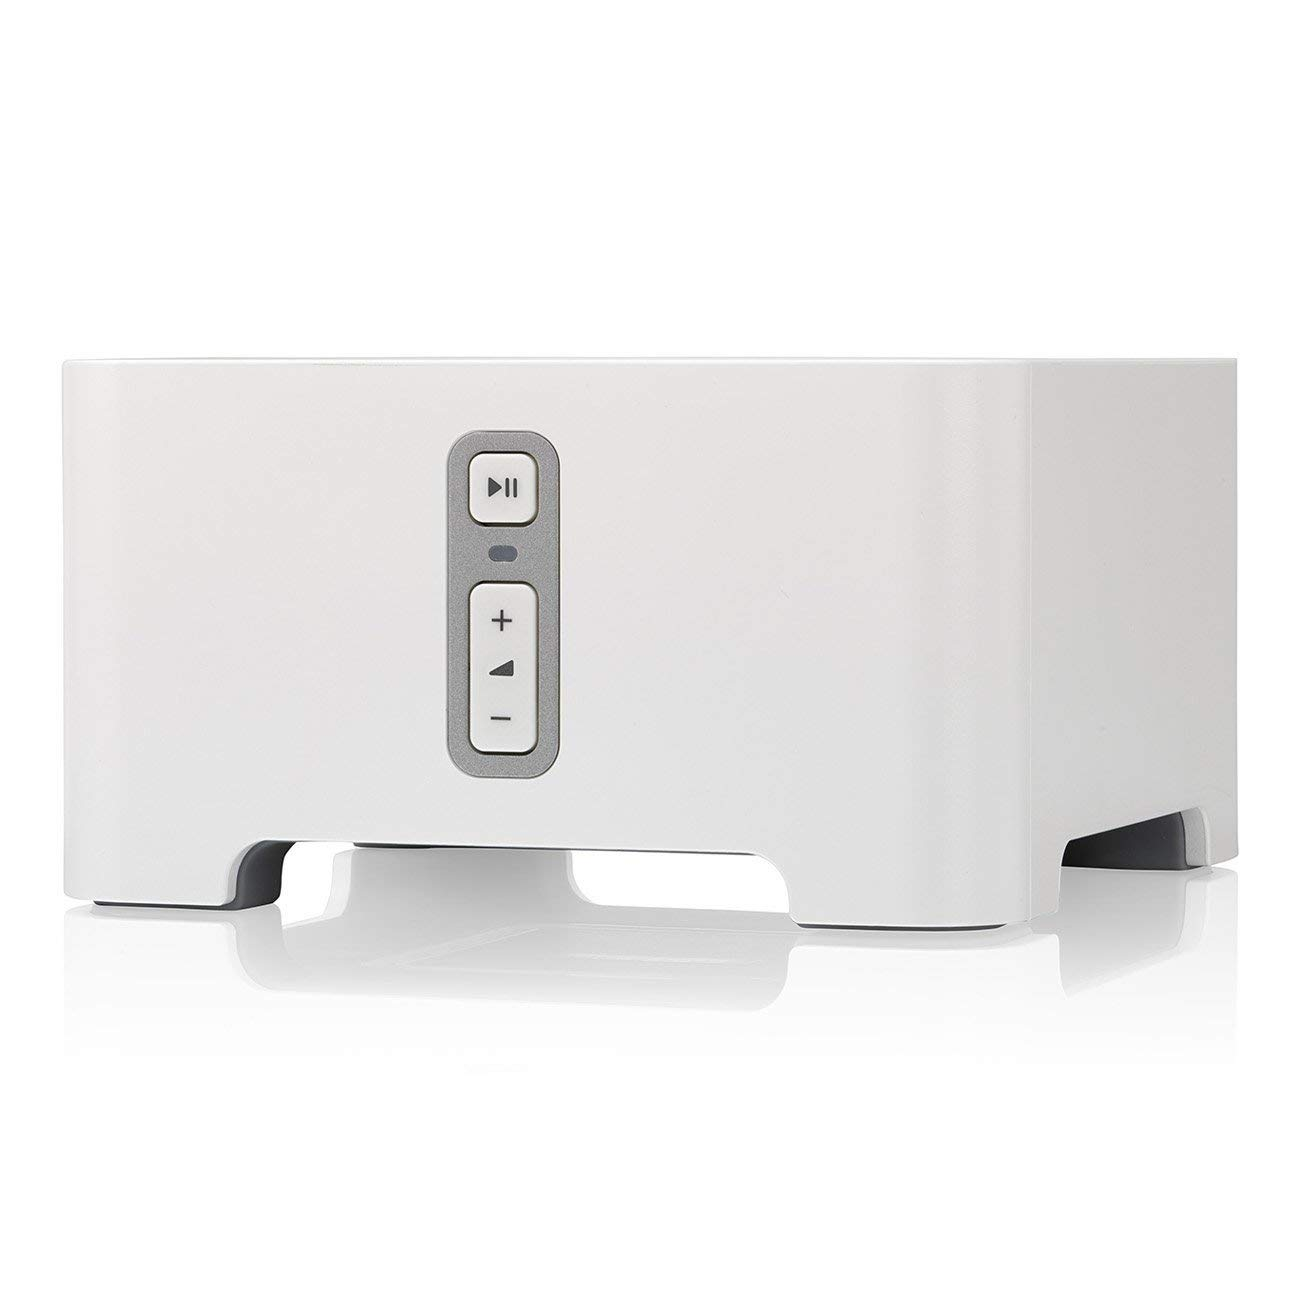 Sonos Connect Wireless Receiver Component with Alexa for Streaming Music - White (Renewed) by Sonos (Image #1)